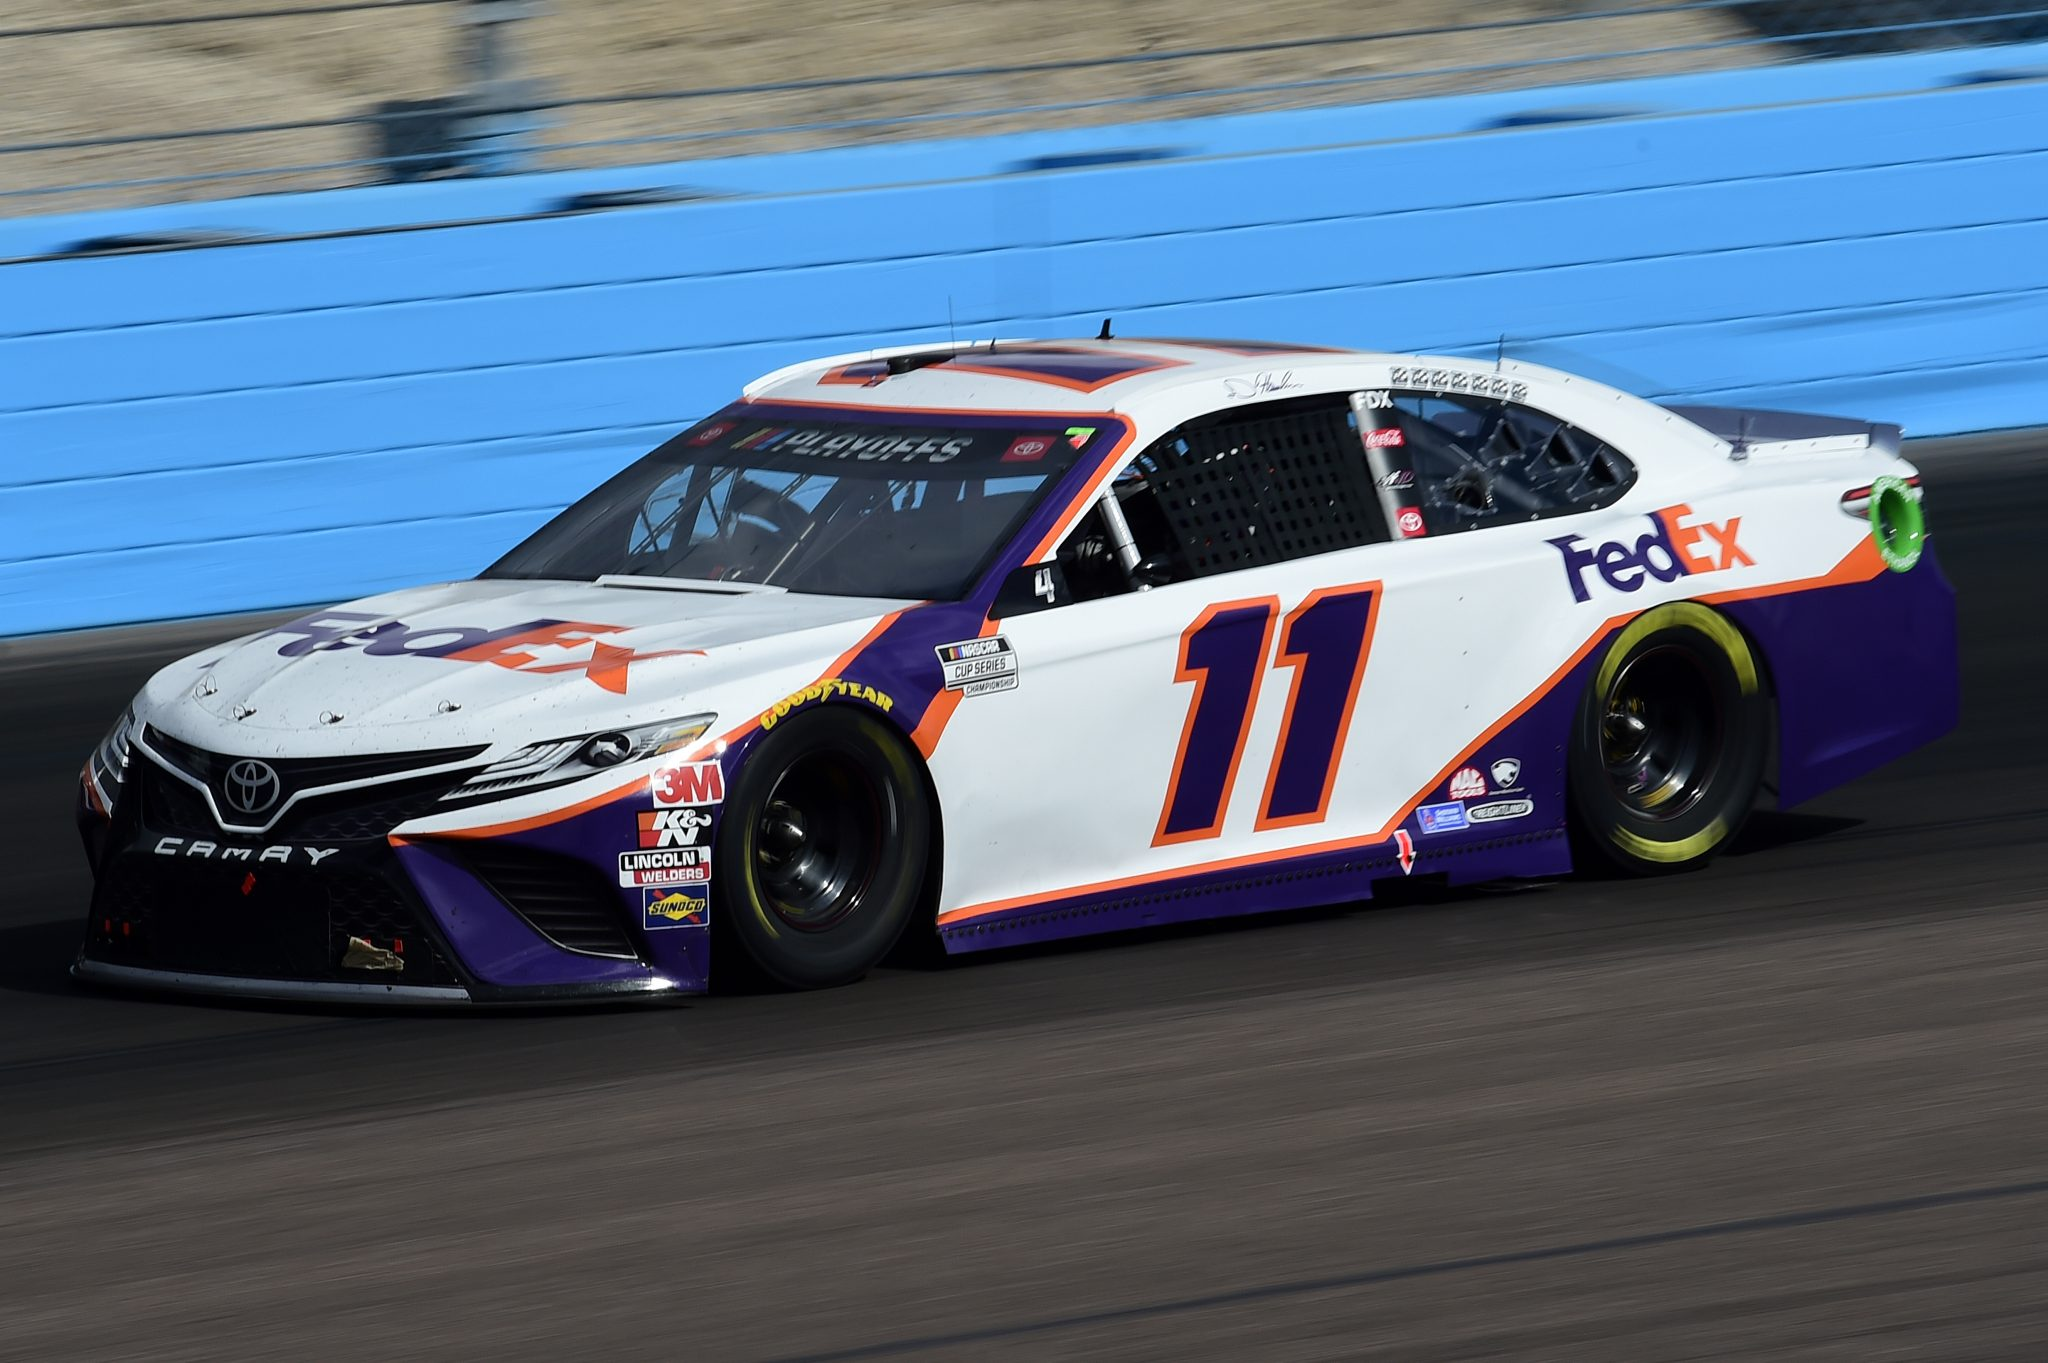 AVONDALE, ARIZONA - NOVEMBER 08: Denny Hamlin, driver of the #11 FedEx Express Toyota, drives during the NASCAR Cup Series Season Finale 500 at Phoenix Raceway on November 08, 2020 in Avondale, Arizona. (Photo by Jared C. Tilton/Getty Images) | Getty Images